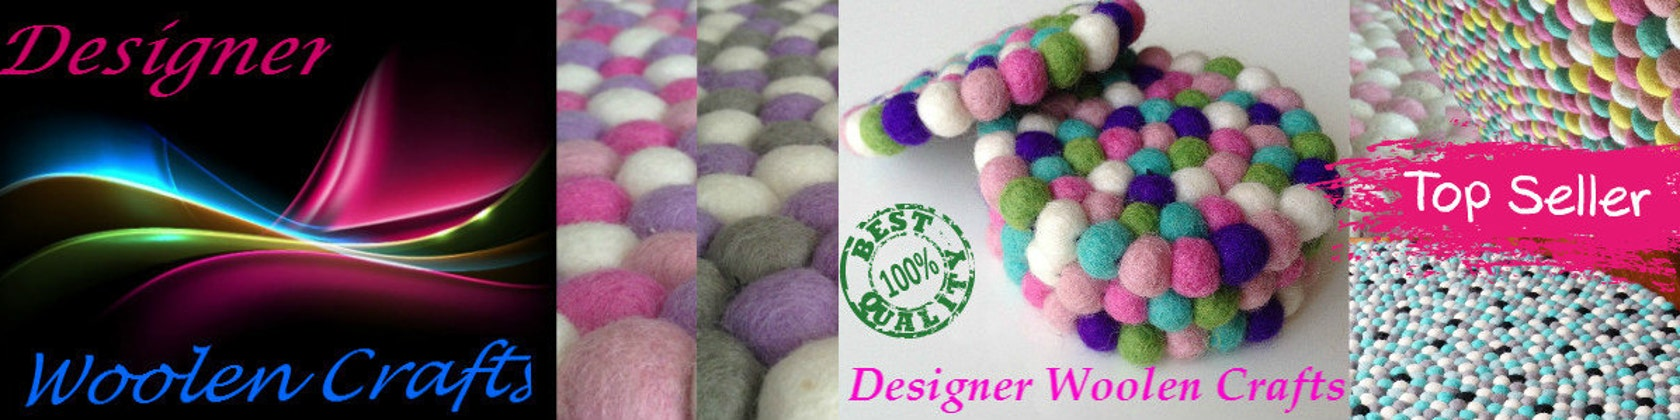 Designer Woolen Crafts By Designerwoolencrafts On Etsy